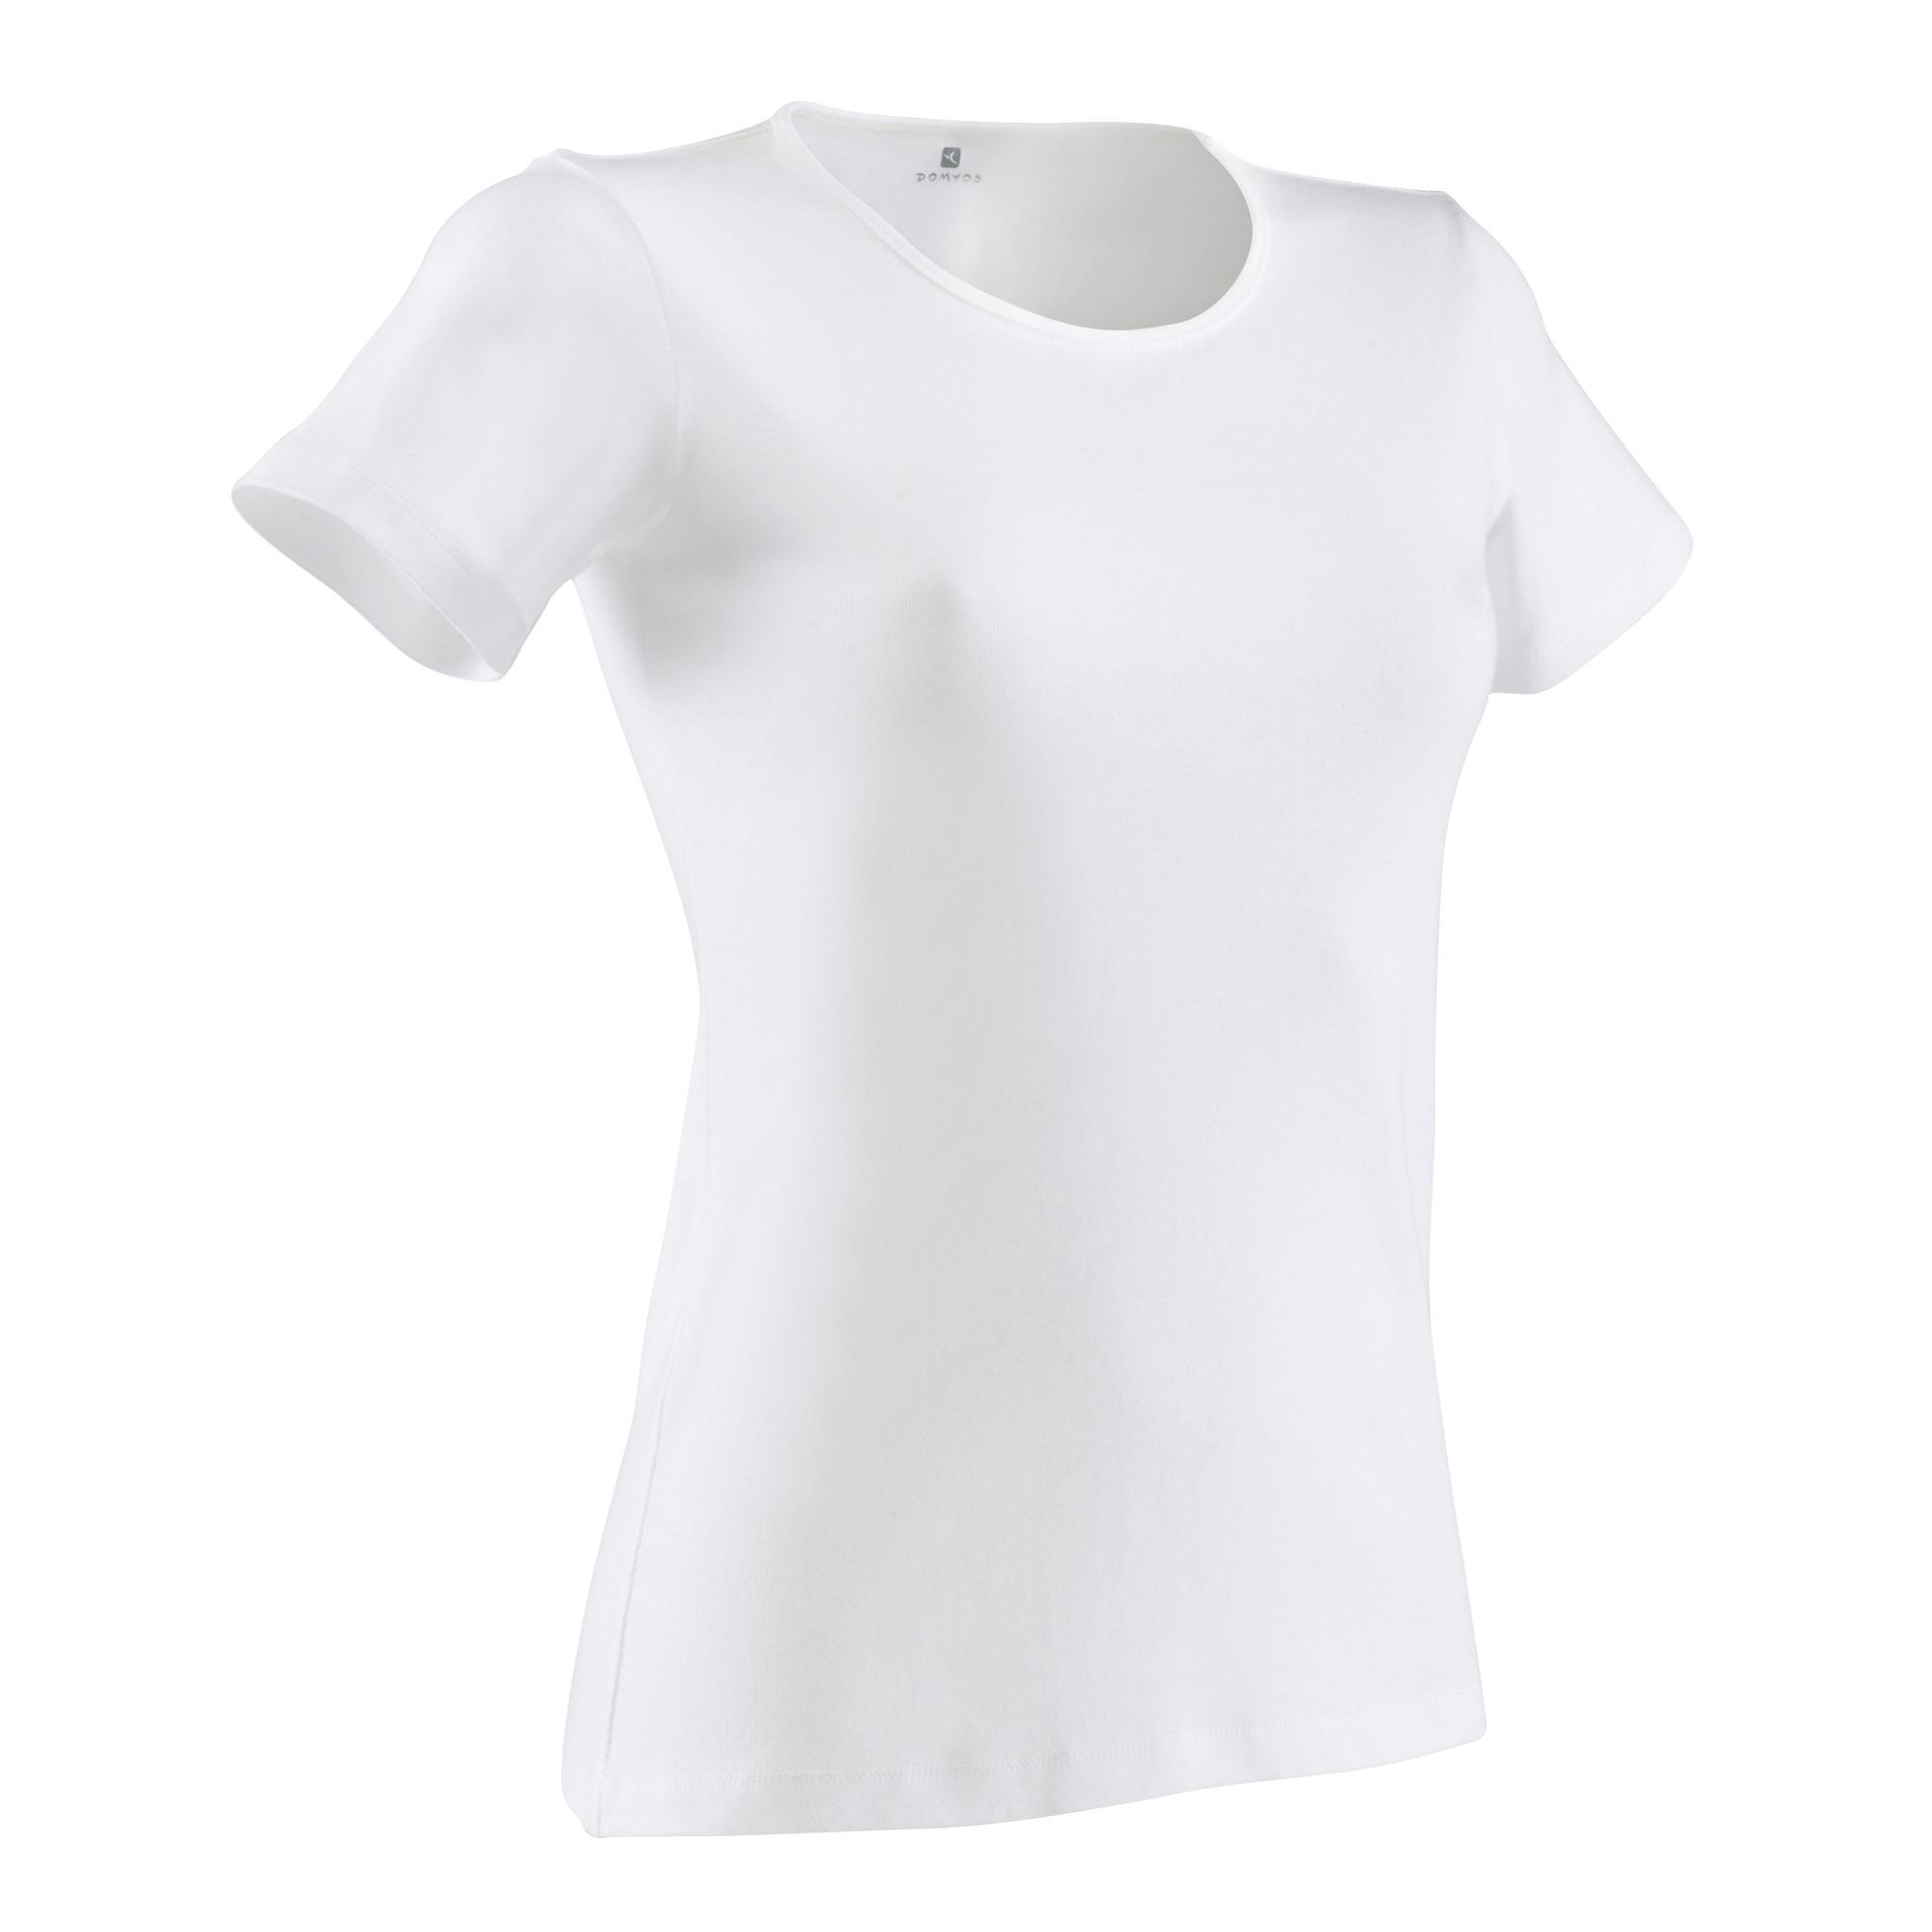 81338528246c t shirt 100 coton - www.goldpoint.be